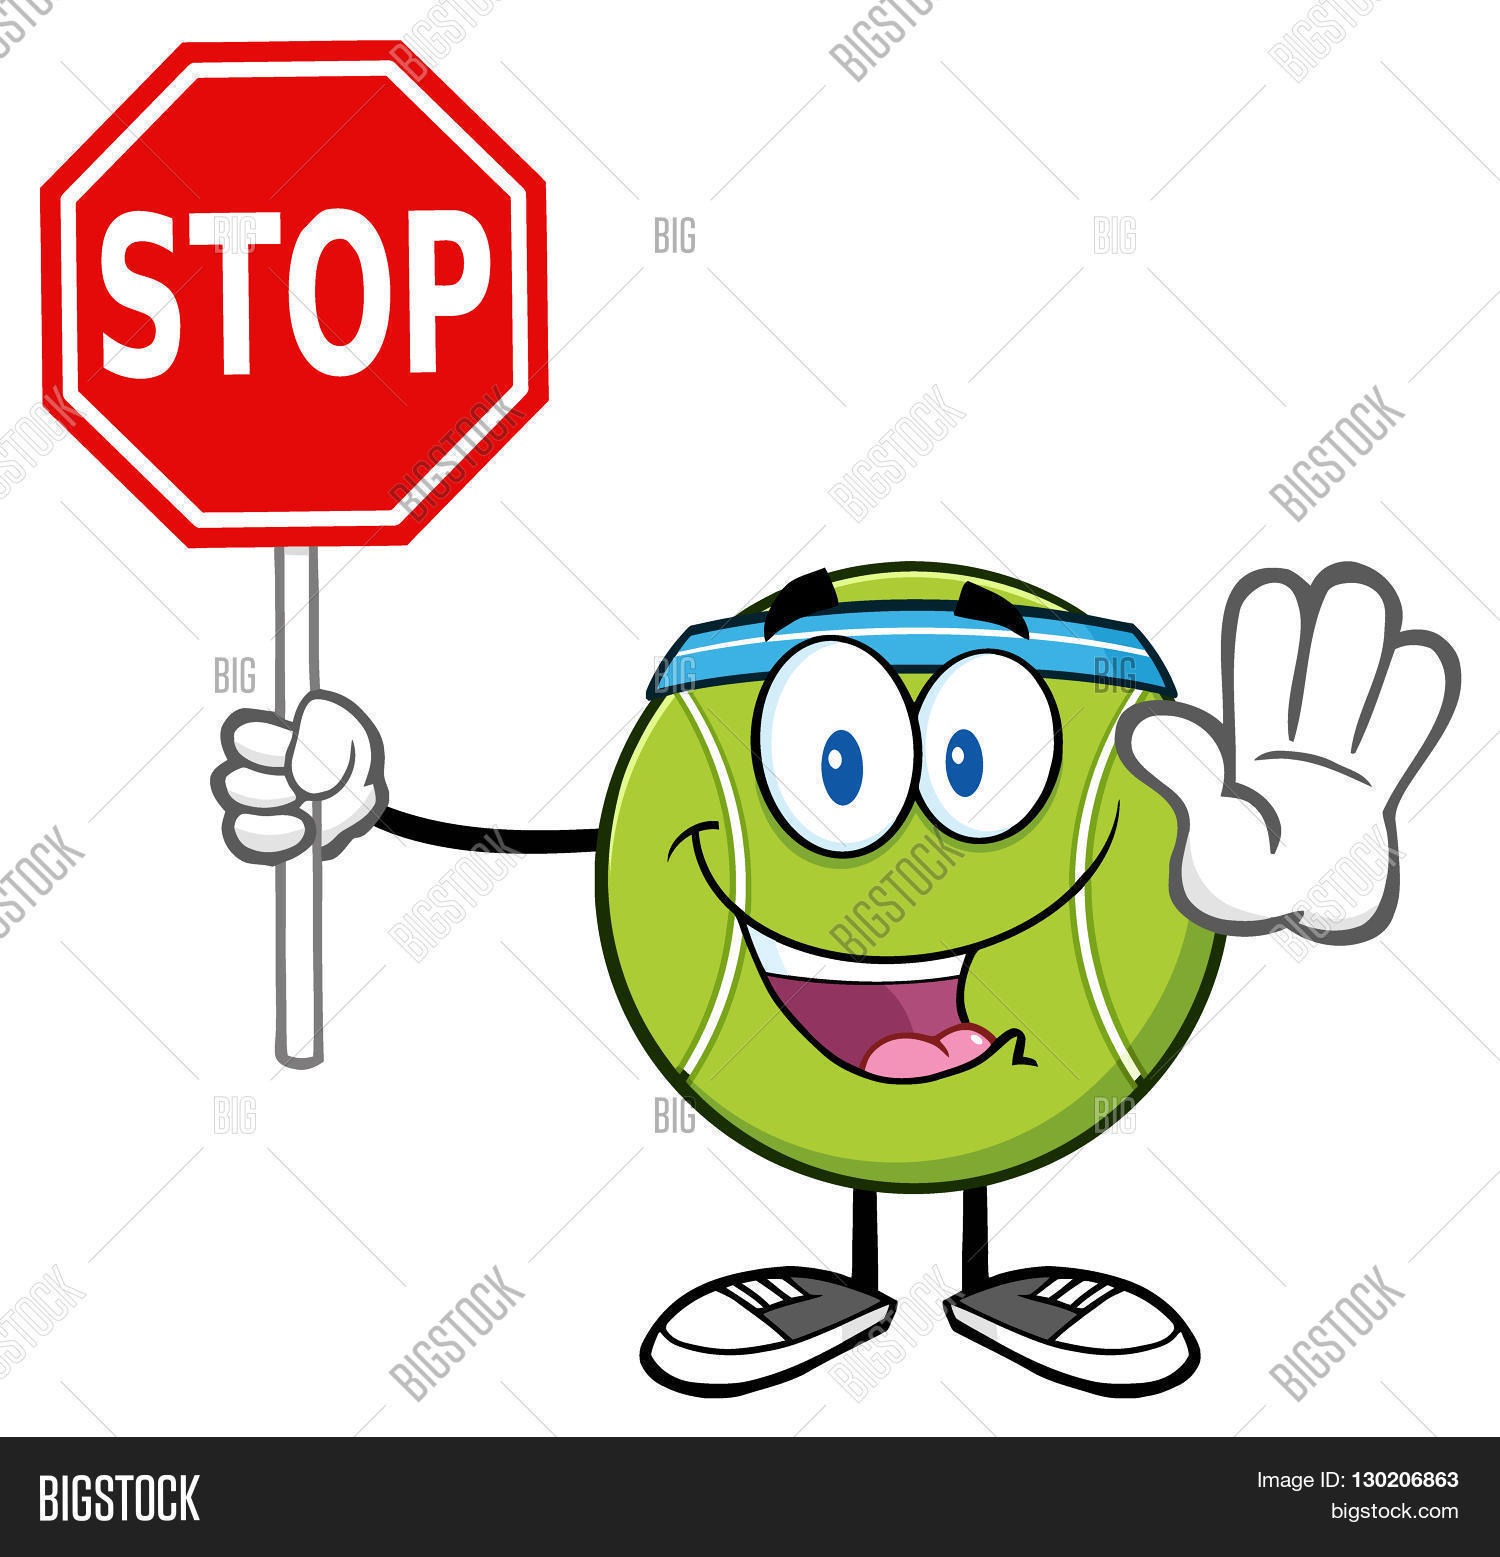 Tennis ball mascot stock photos tennis ball mascot stock photography - Funny Tennis Ball Cartoon Mascot Character Gesturing And Holding A Stop Sign